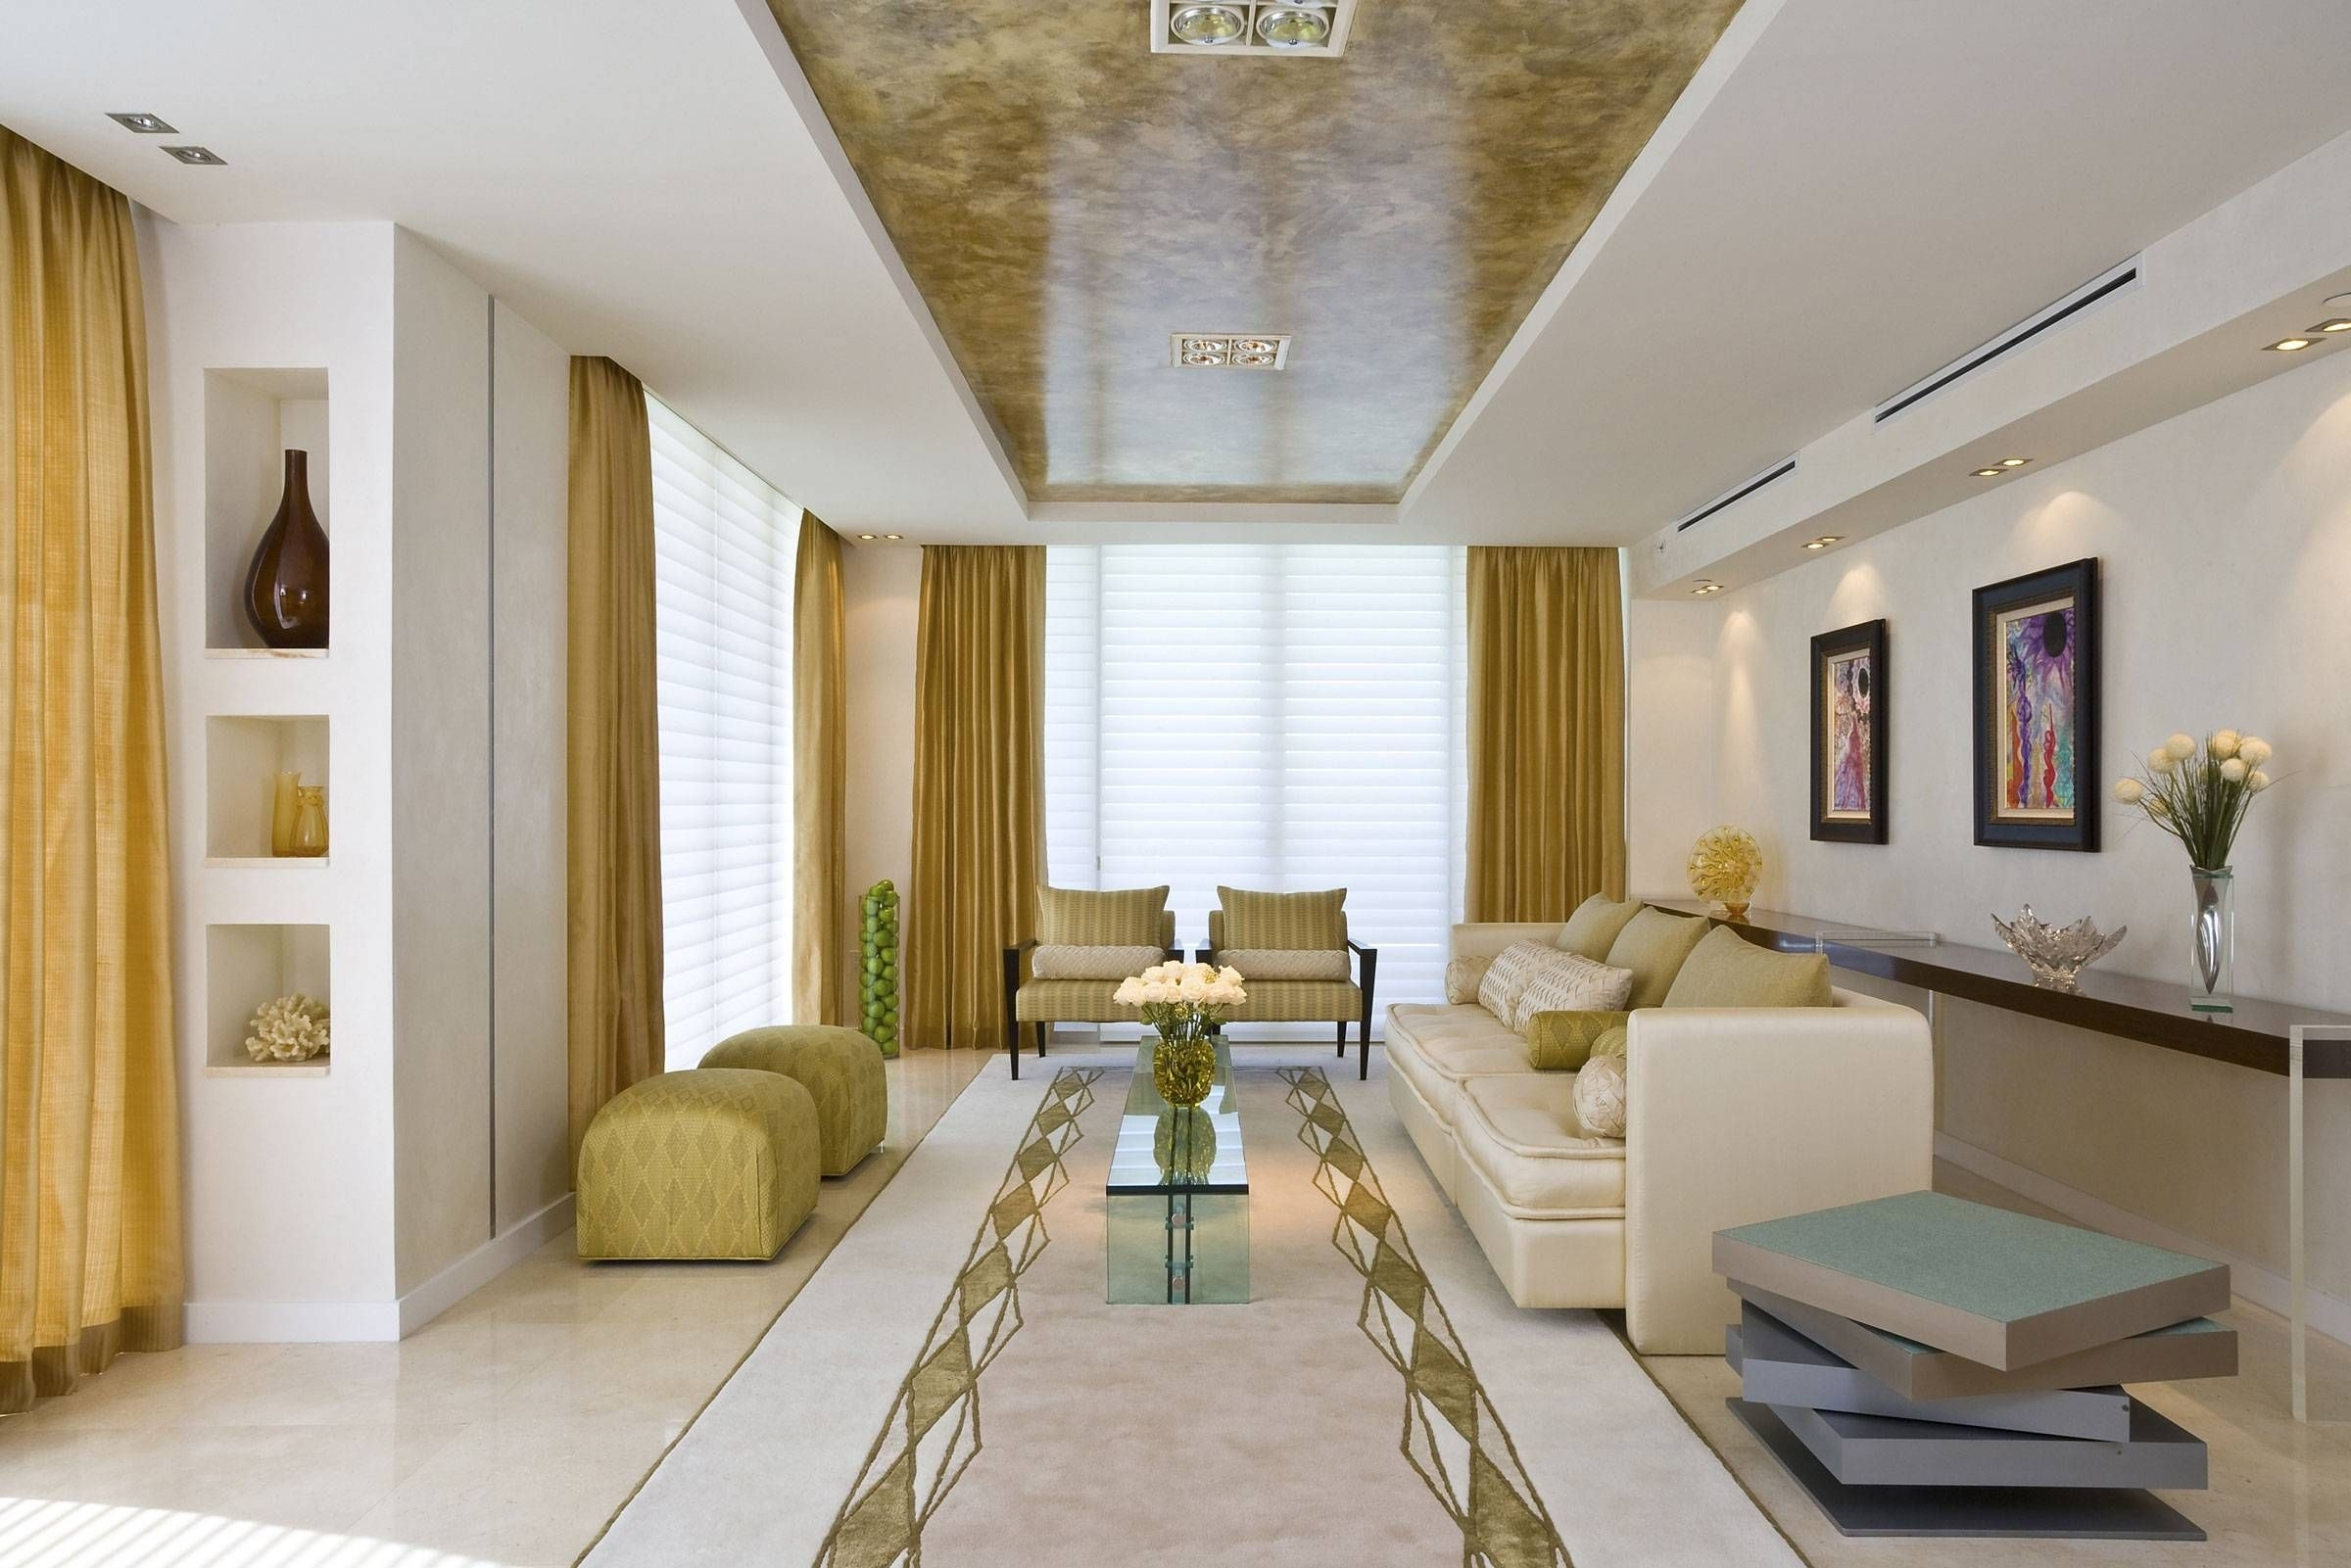 Long Narrow Family Room Layout With Gold Interior Design Trend And With Regard To Recent Wall Accents For Narrow Room (View 7 of 15)